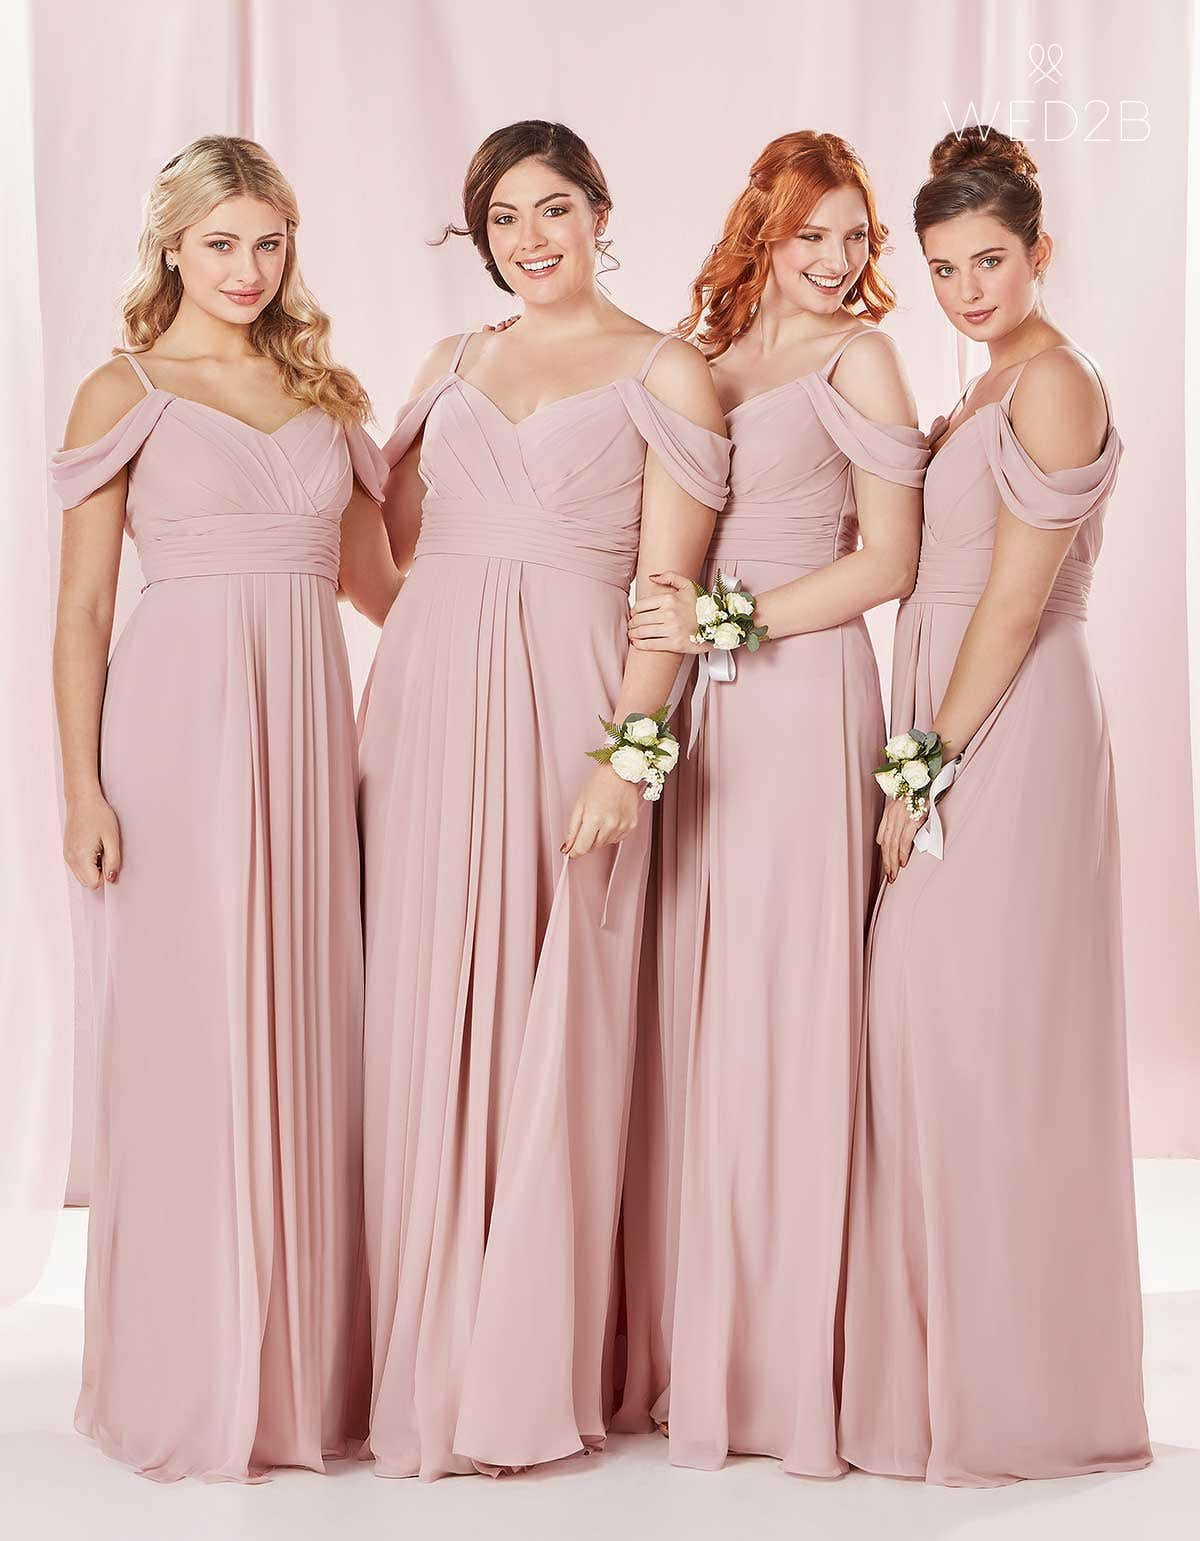 How To Choose Your Bridesmaids Dresses